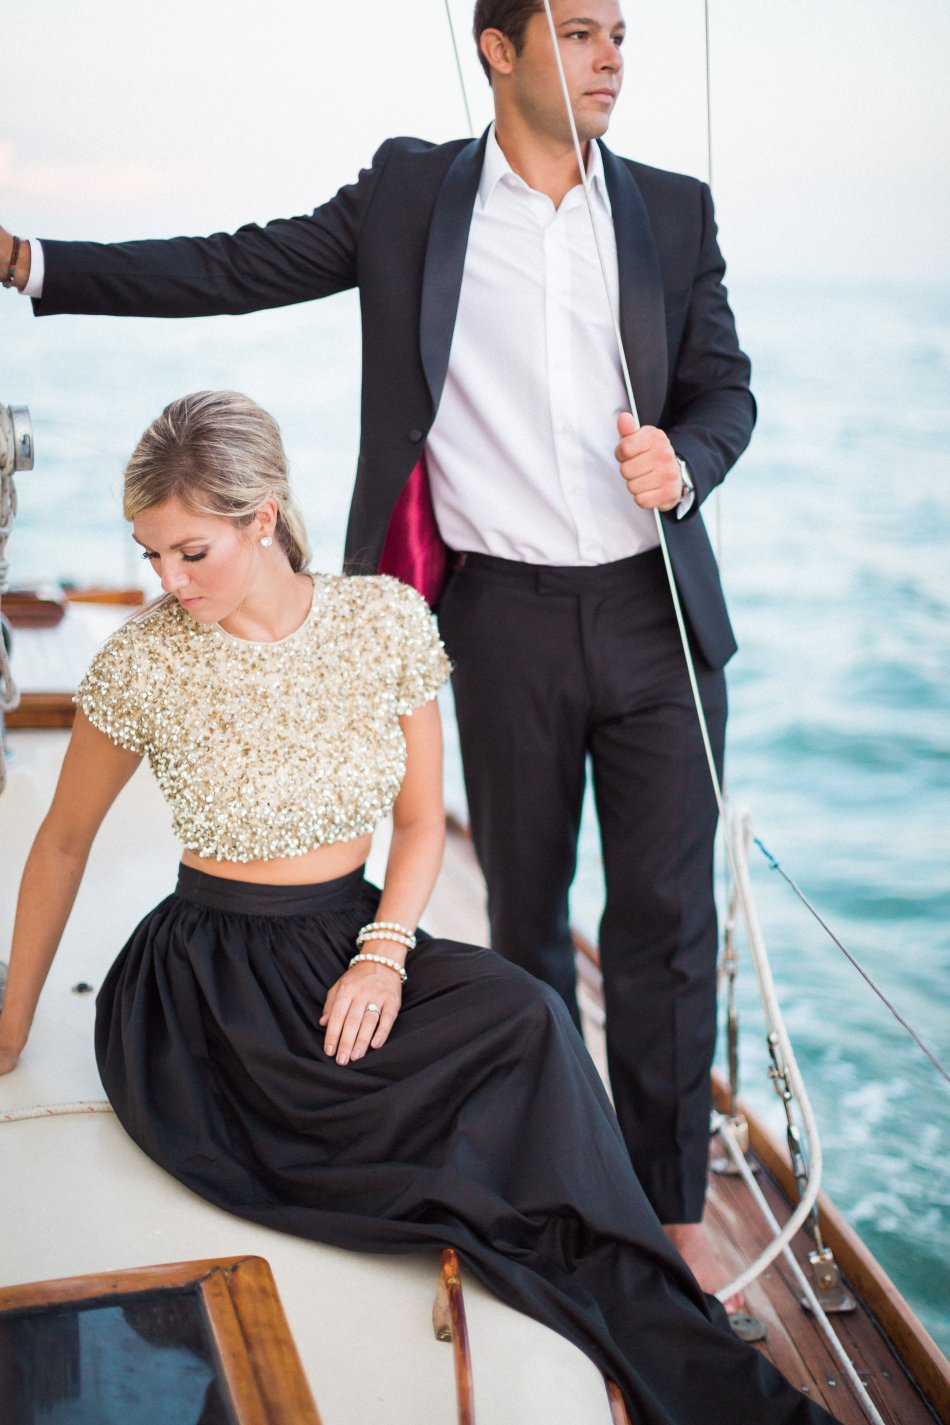 naples-luxury-sailing-engagement-photography-nautical-sailboat-engagement_1099.jpg